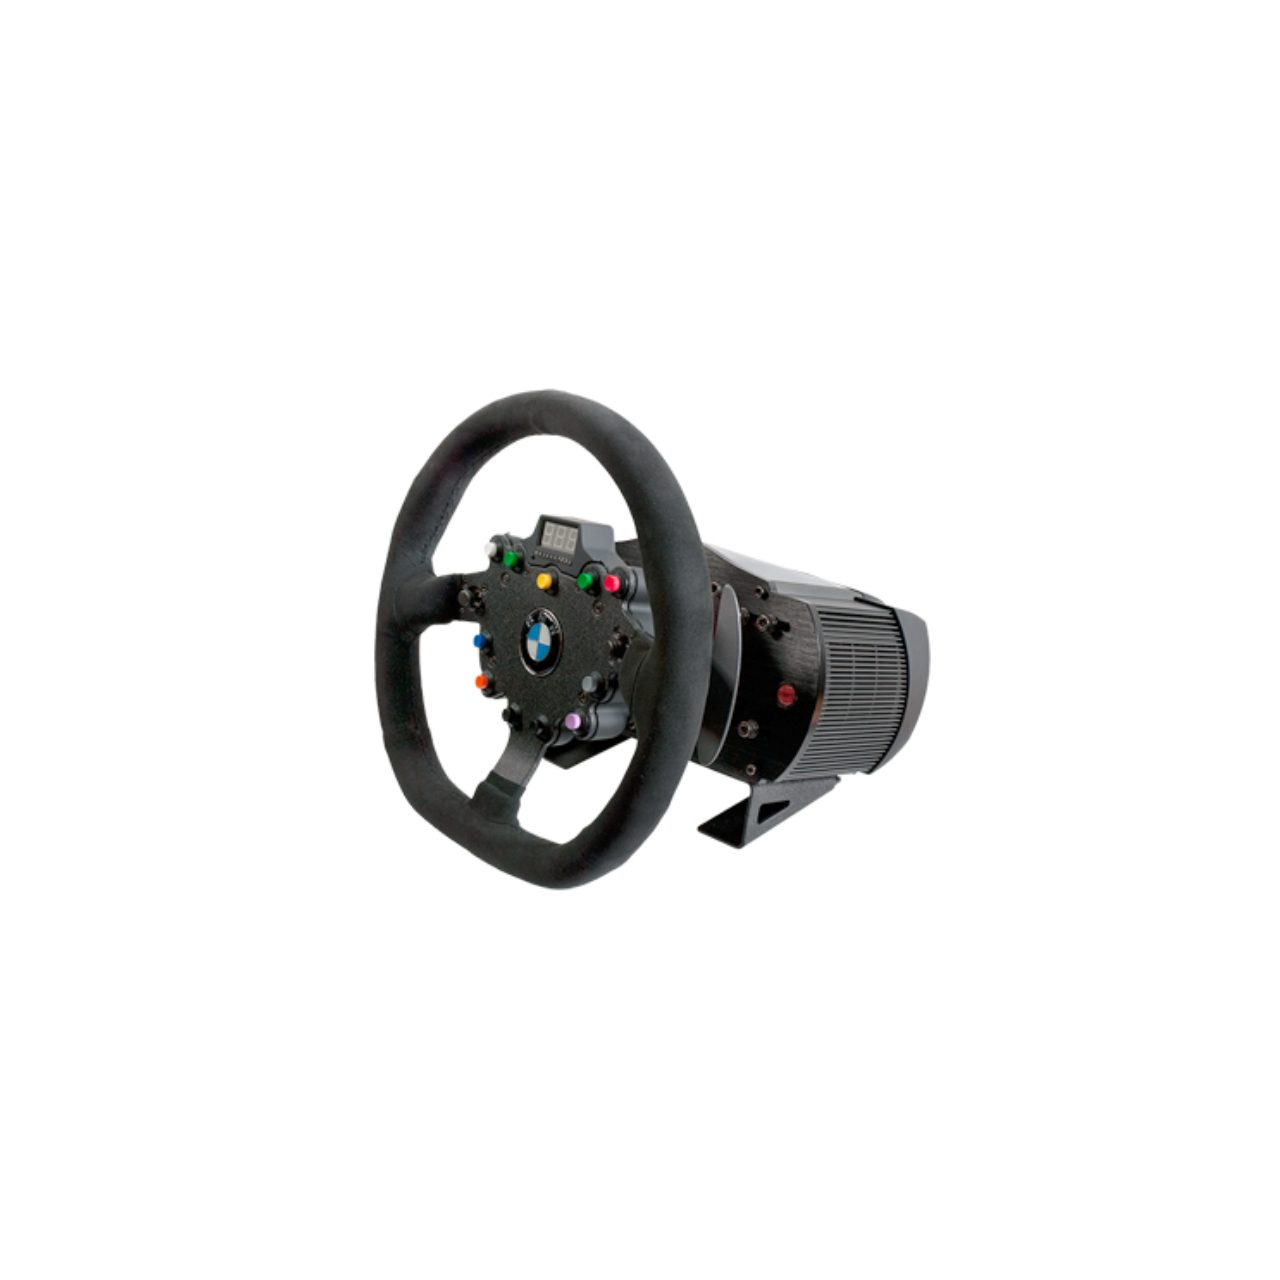 ClubSport Steering Wheel BMW GT2